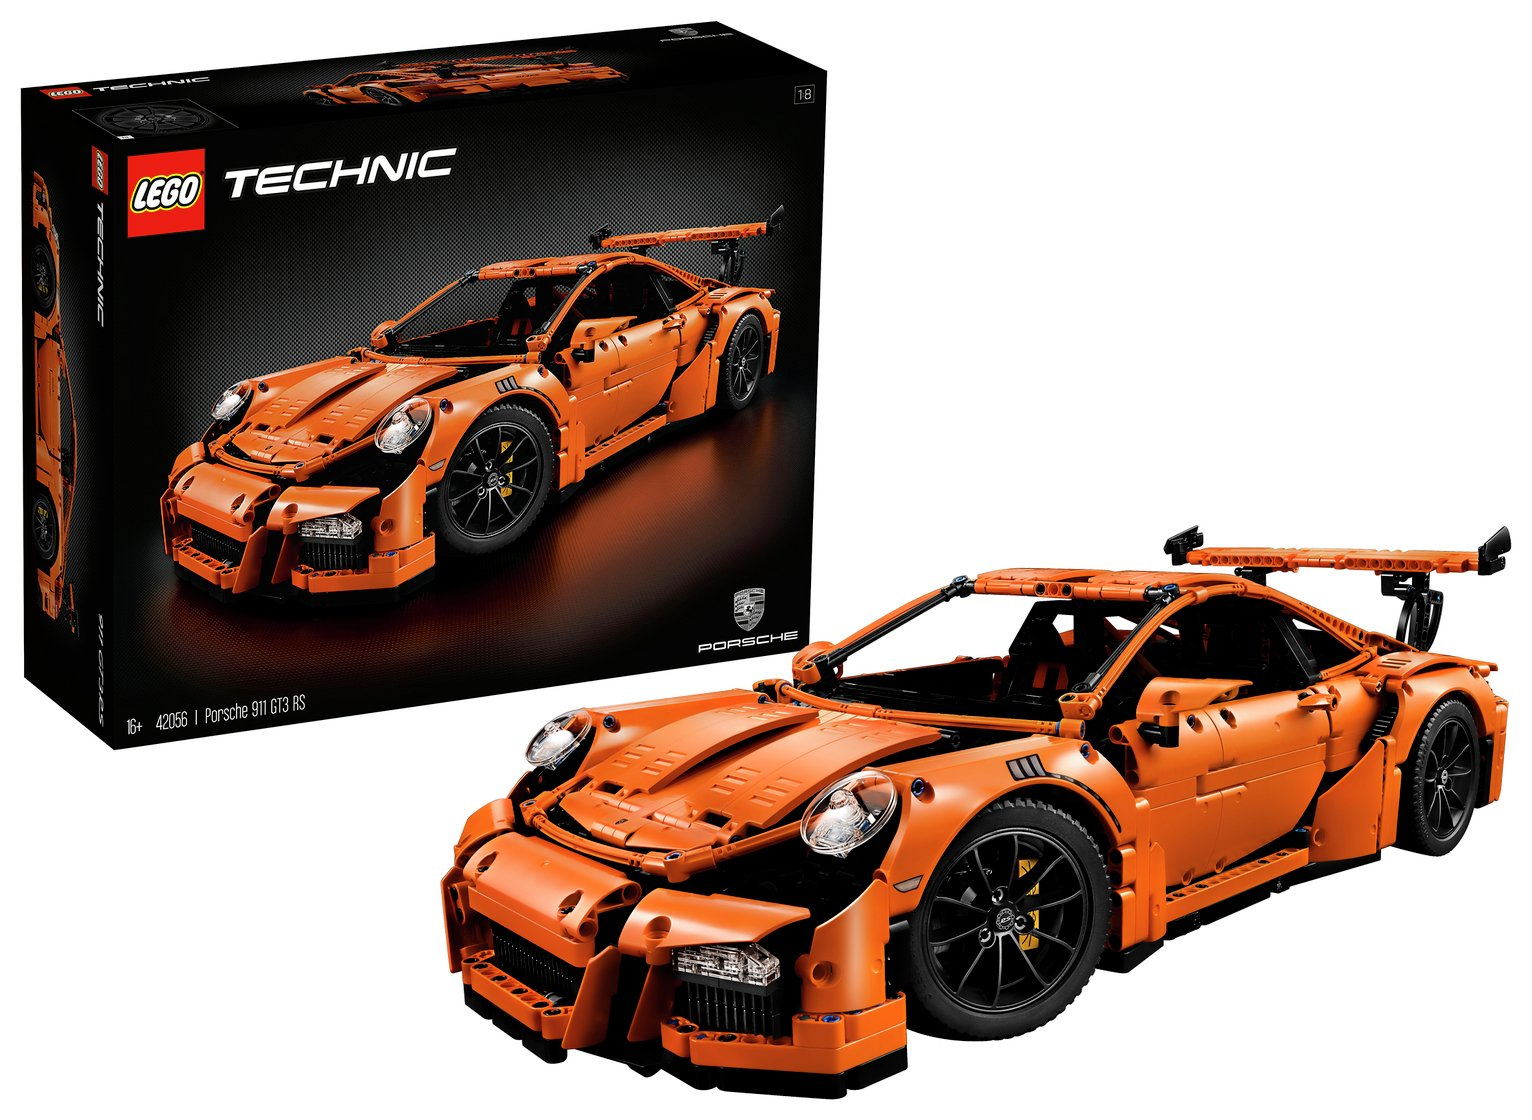 Image of LEGO Technic Porsche 911 GT3 RS - 42056